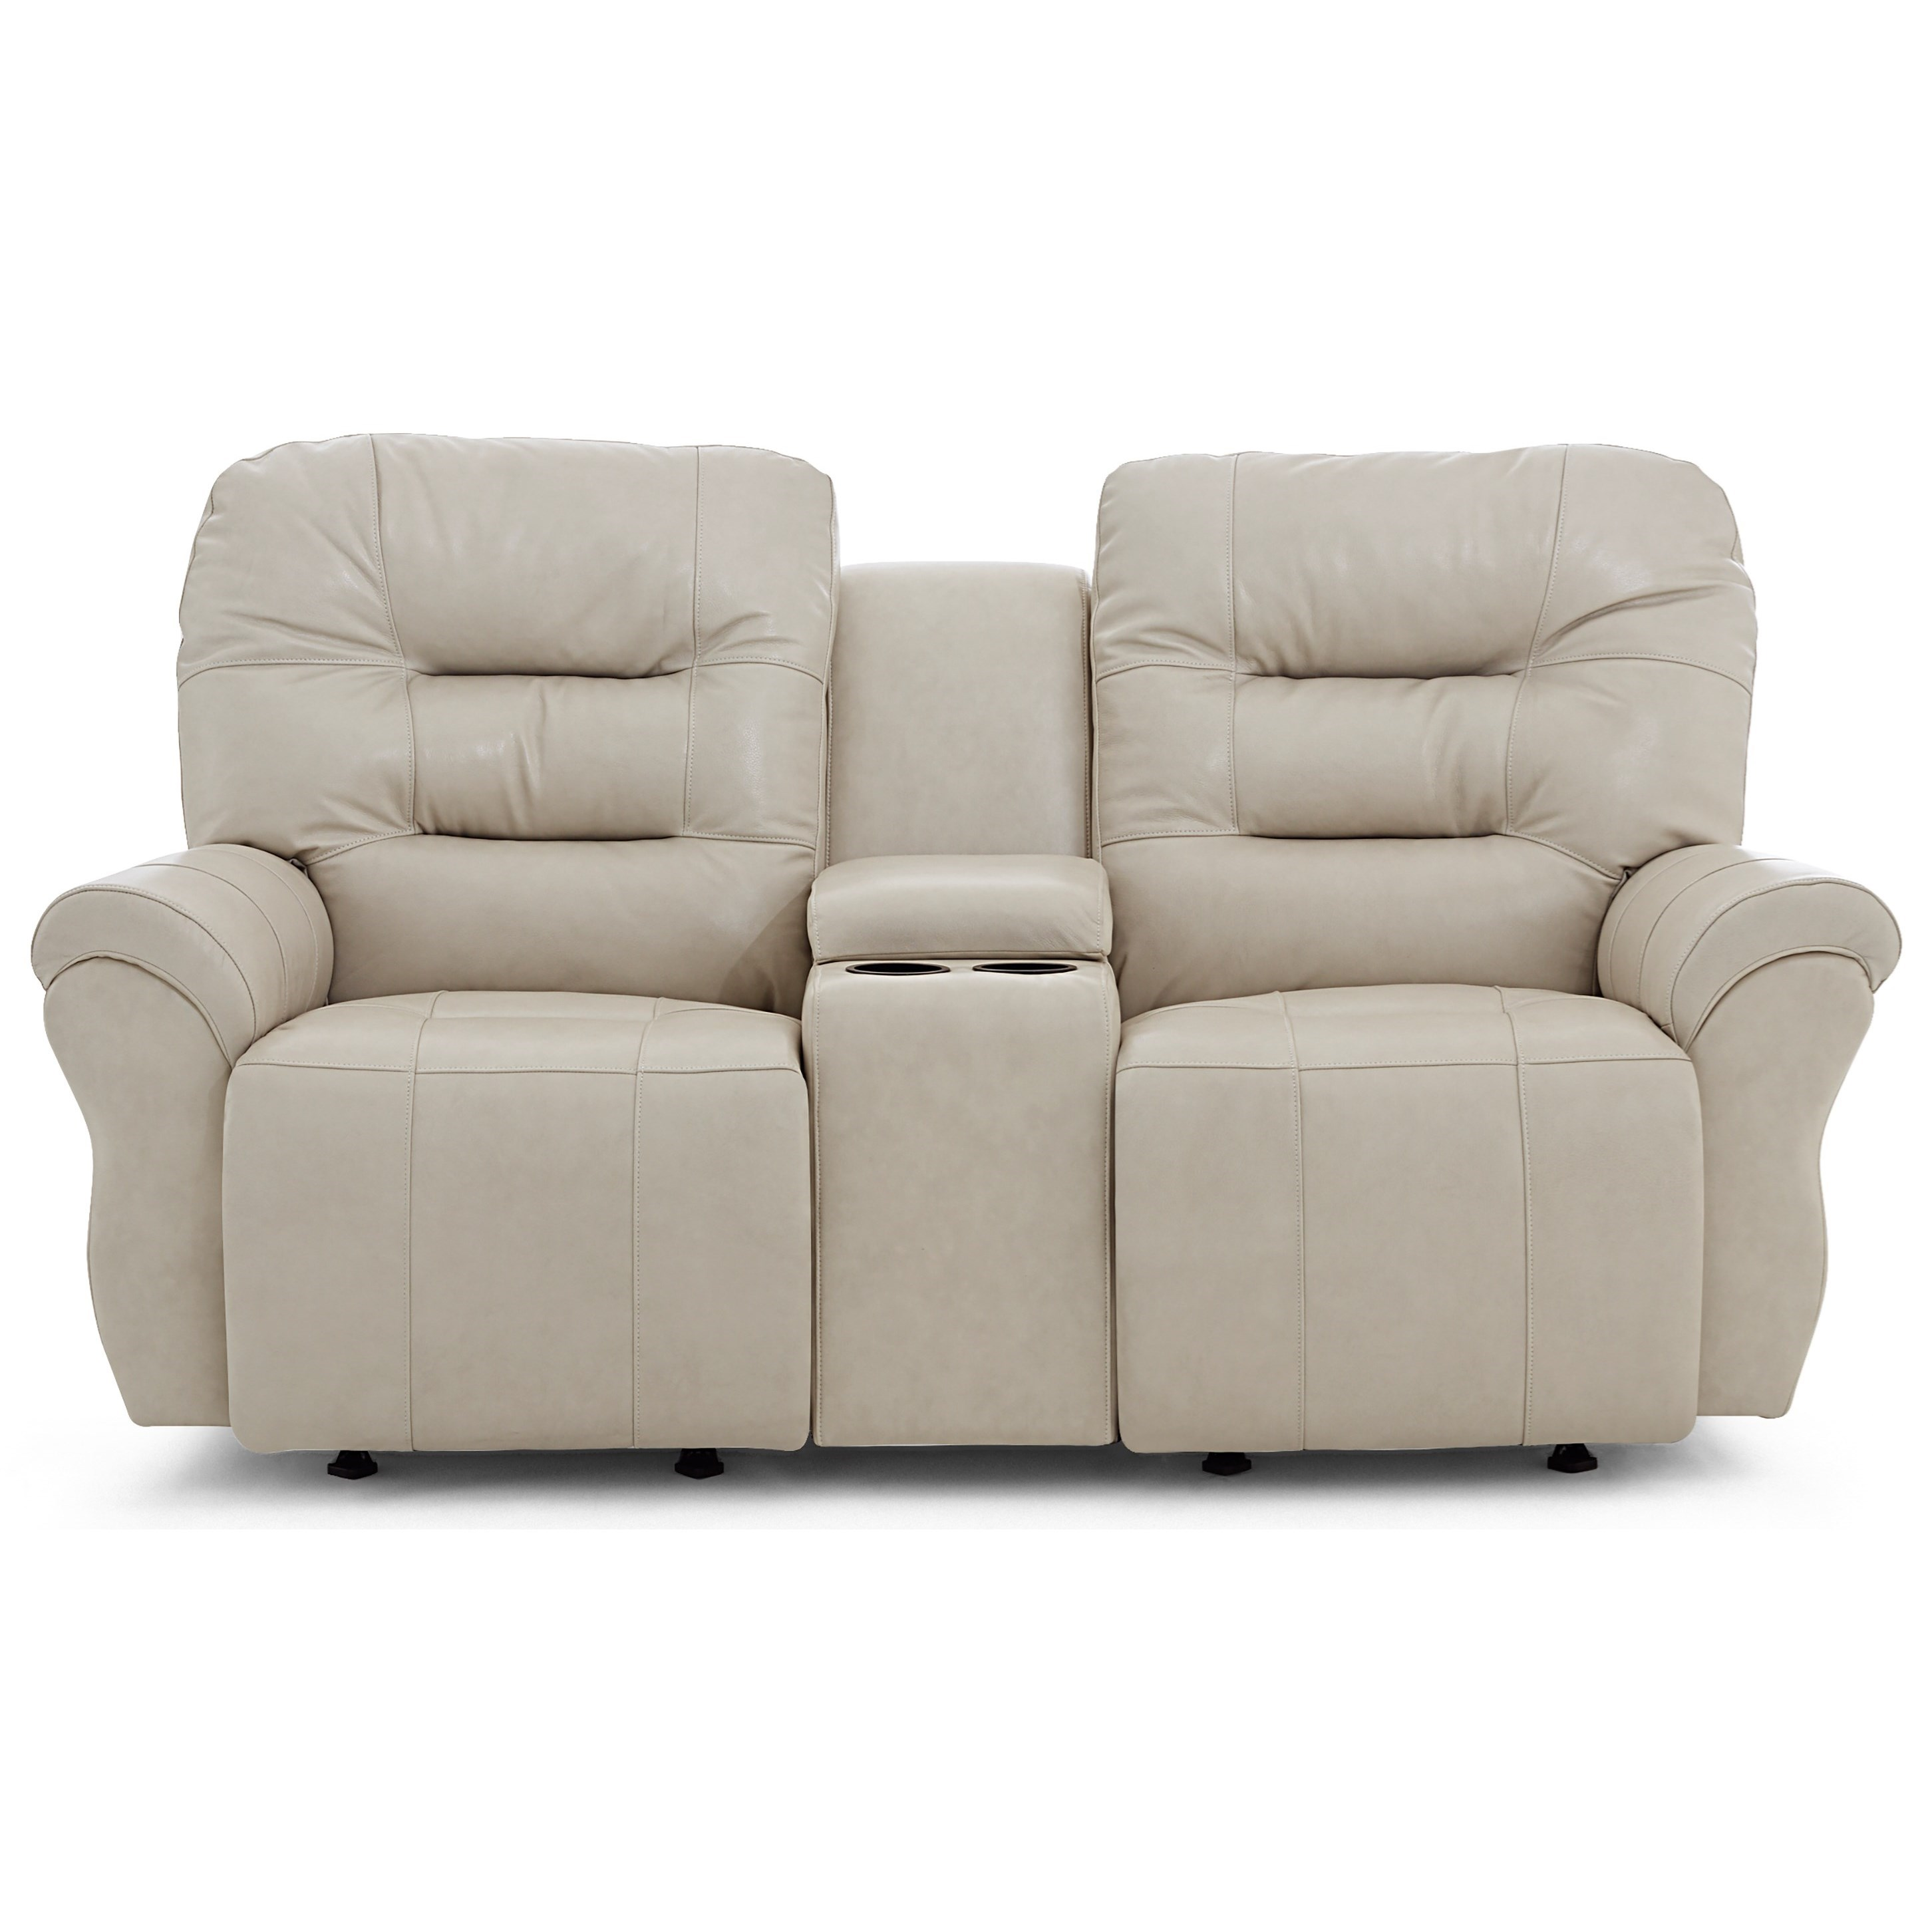 Peachy Casual Power Rocking Reclining Loveseat With Cupholder Gmtry Best Dining Table And Chair Ideas Images Gmtryco